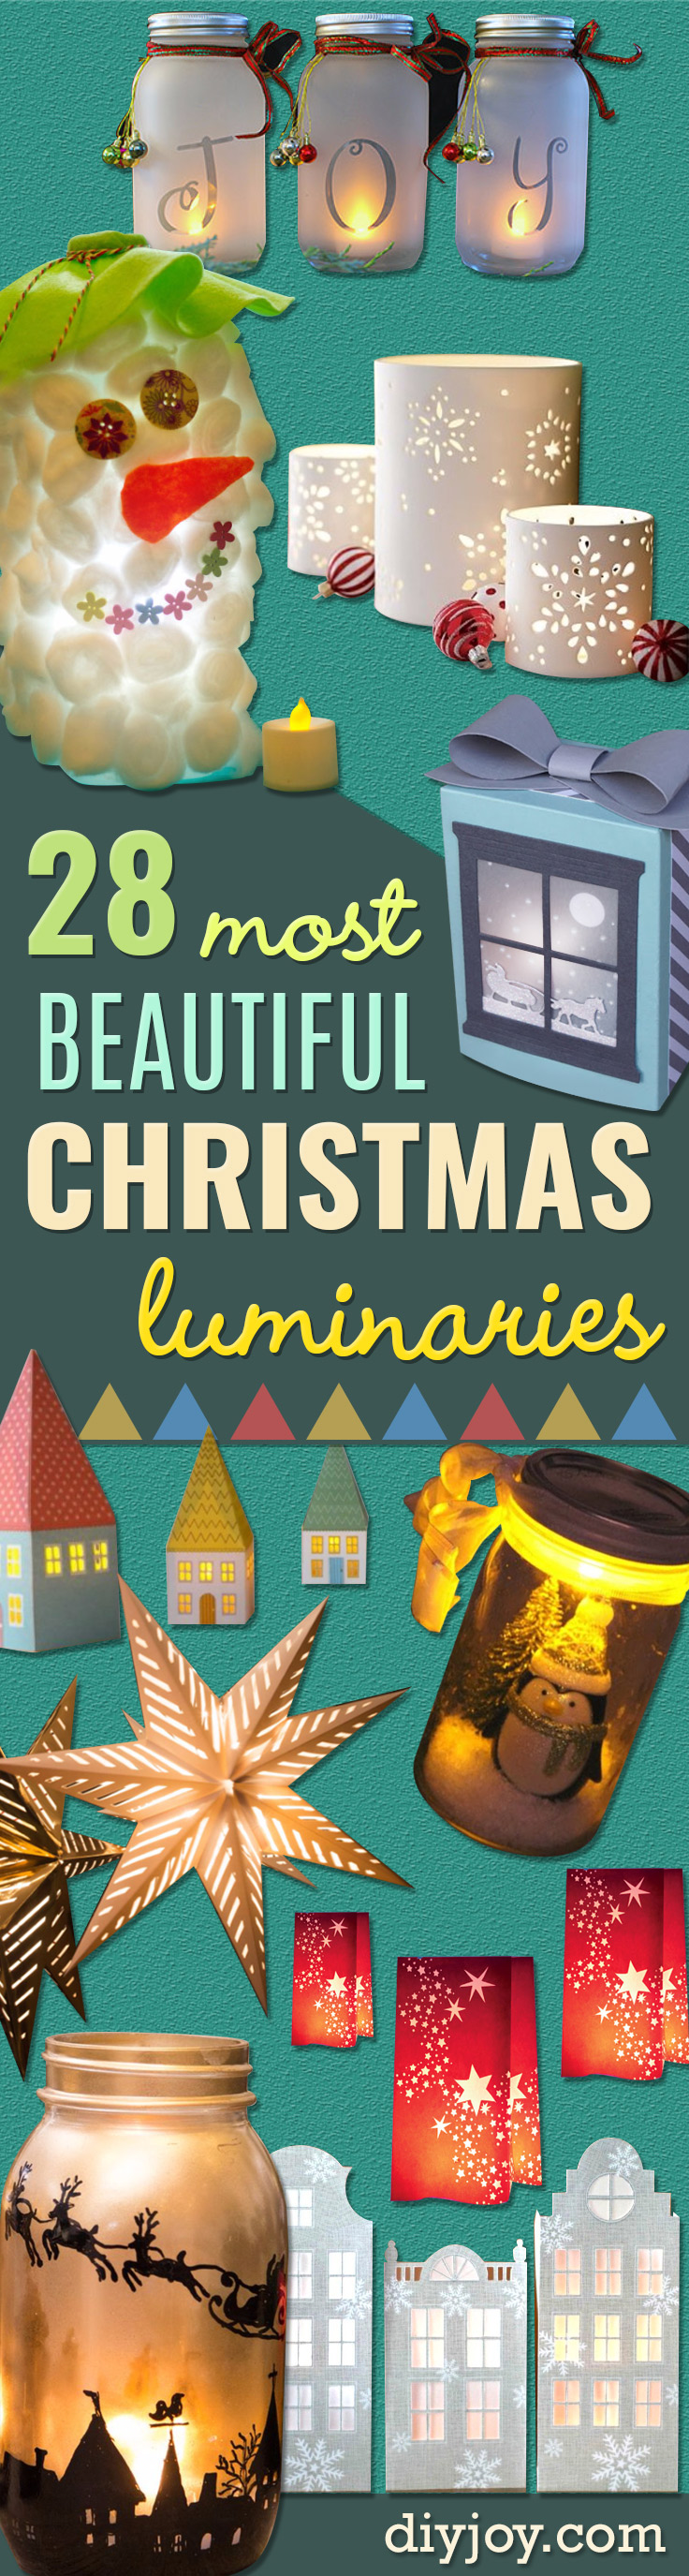 DIY Christmas Luminaries and Home Decor for The Holidays - Cool Candle Holders, Tea Lights, Holiday Gift Ideas, Christmas Crafts for Kids - Line Winter Walkways With Rustic Mason Jars, Paper Bag Luminaries and Creative Lighting Ideas